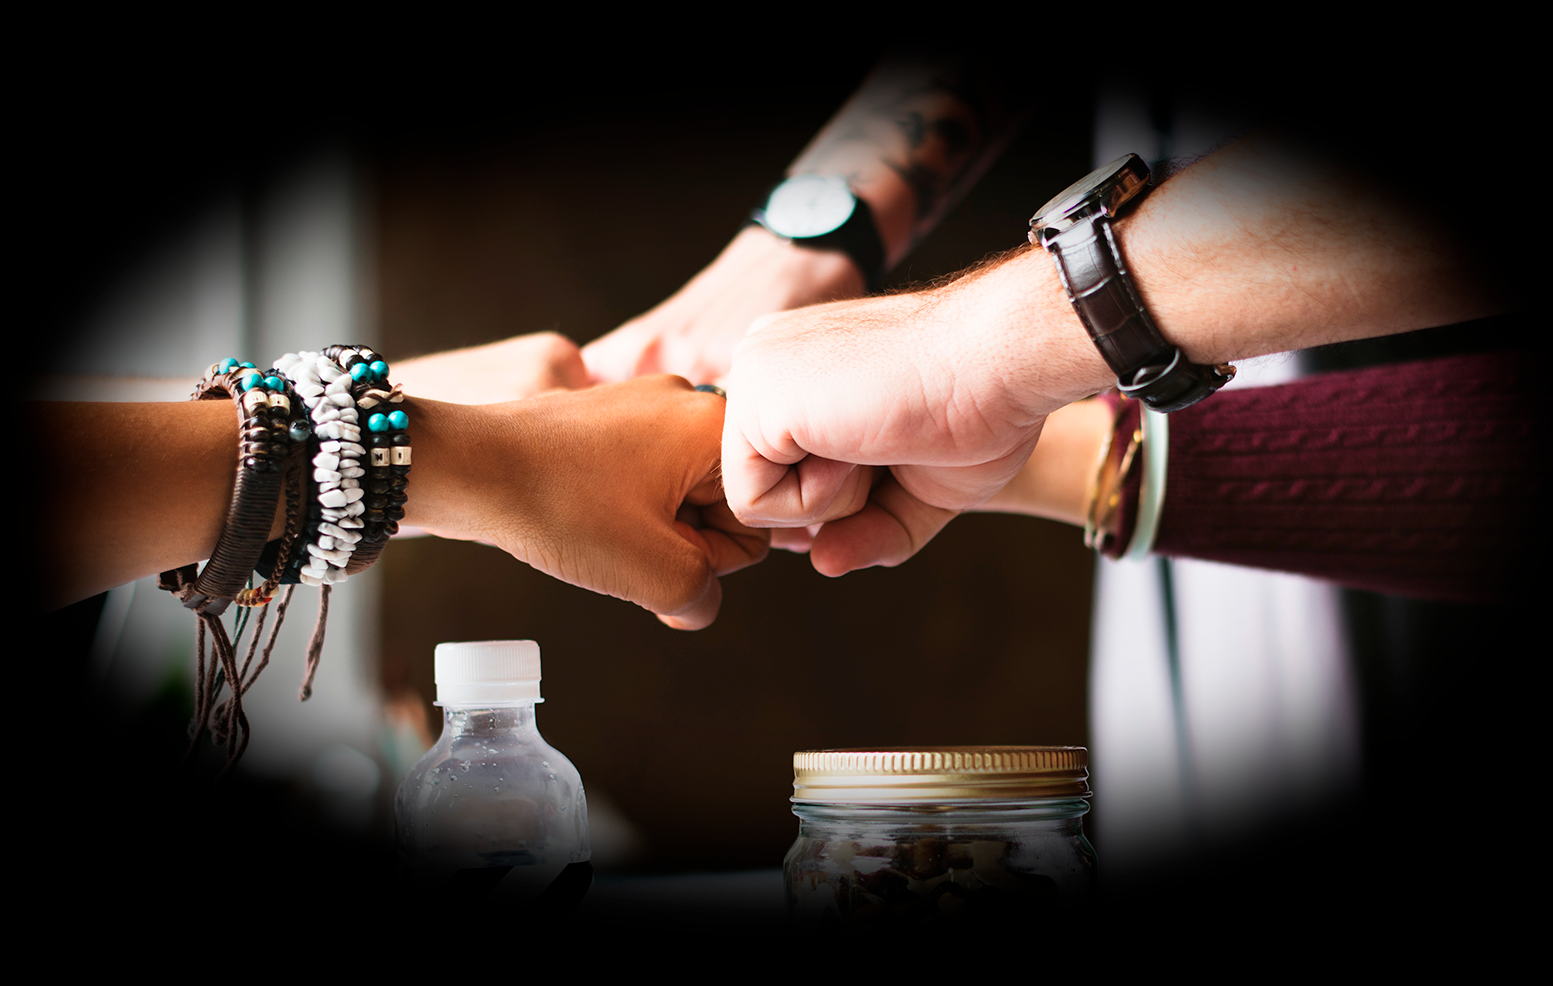 collaboration means to involve the whole team